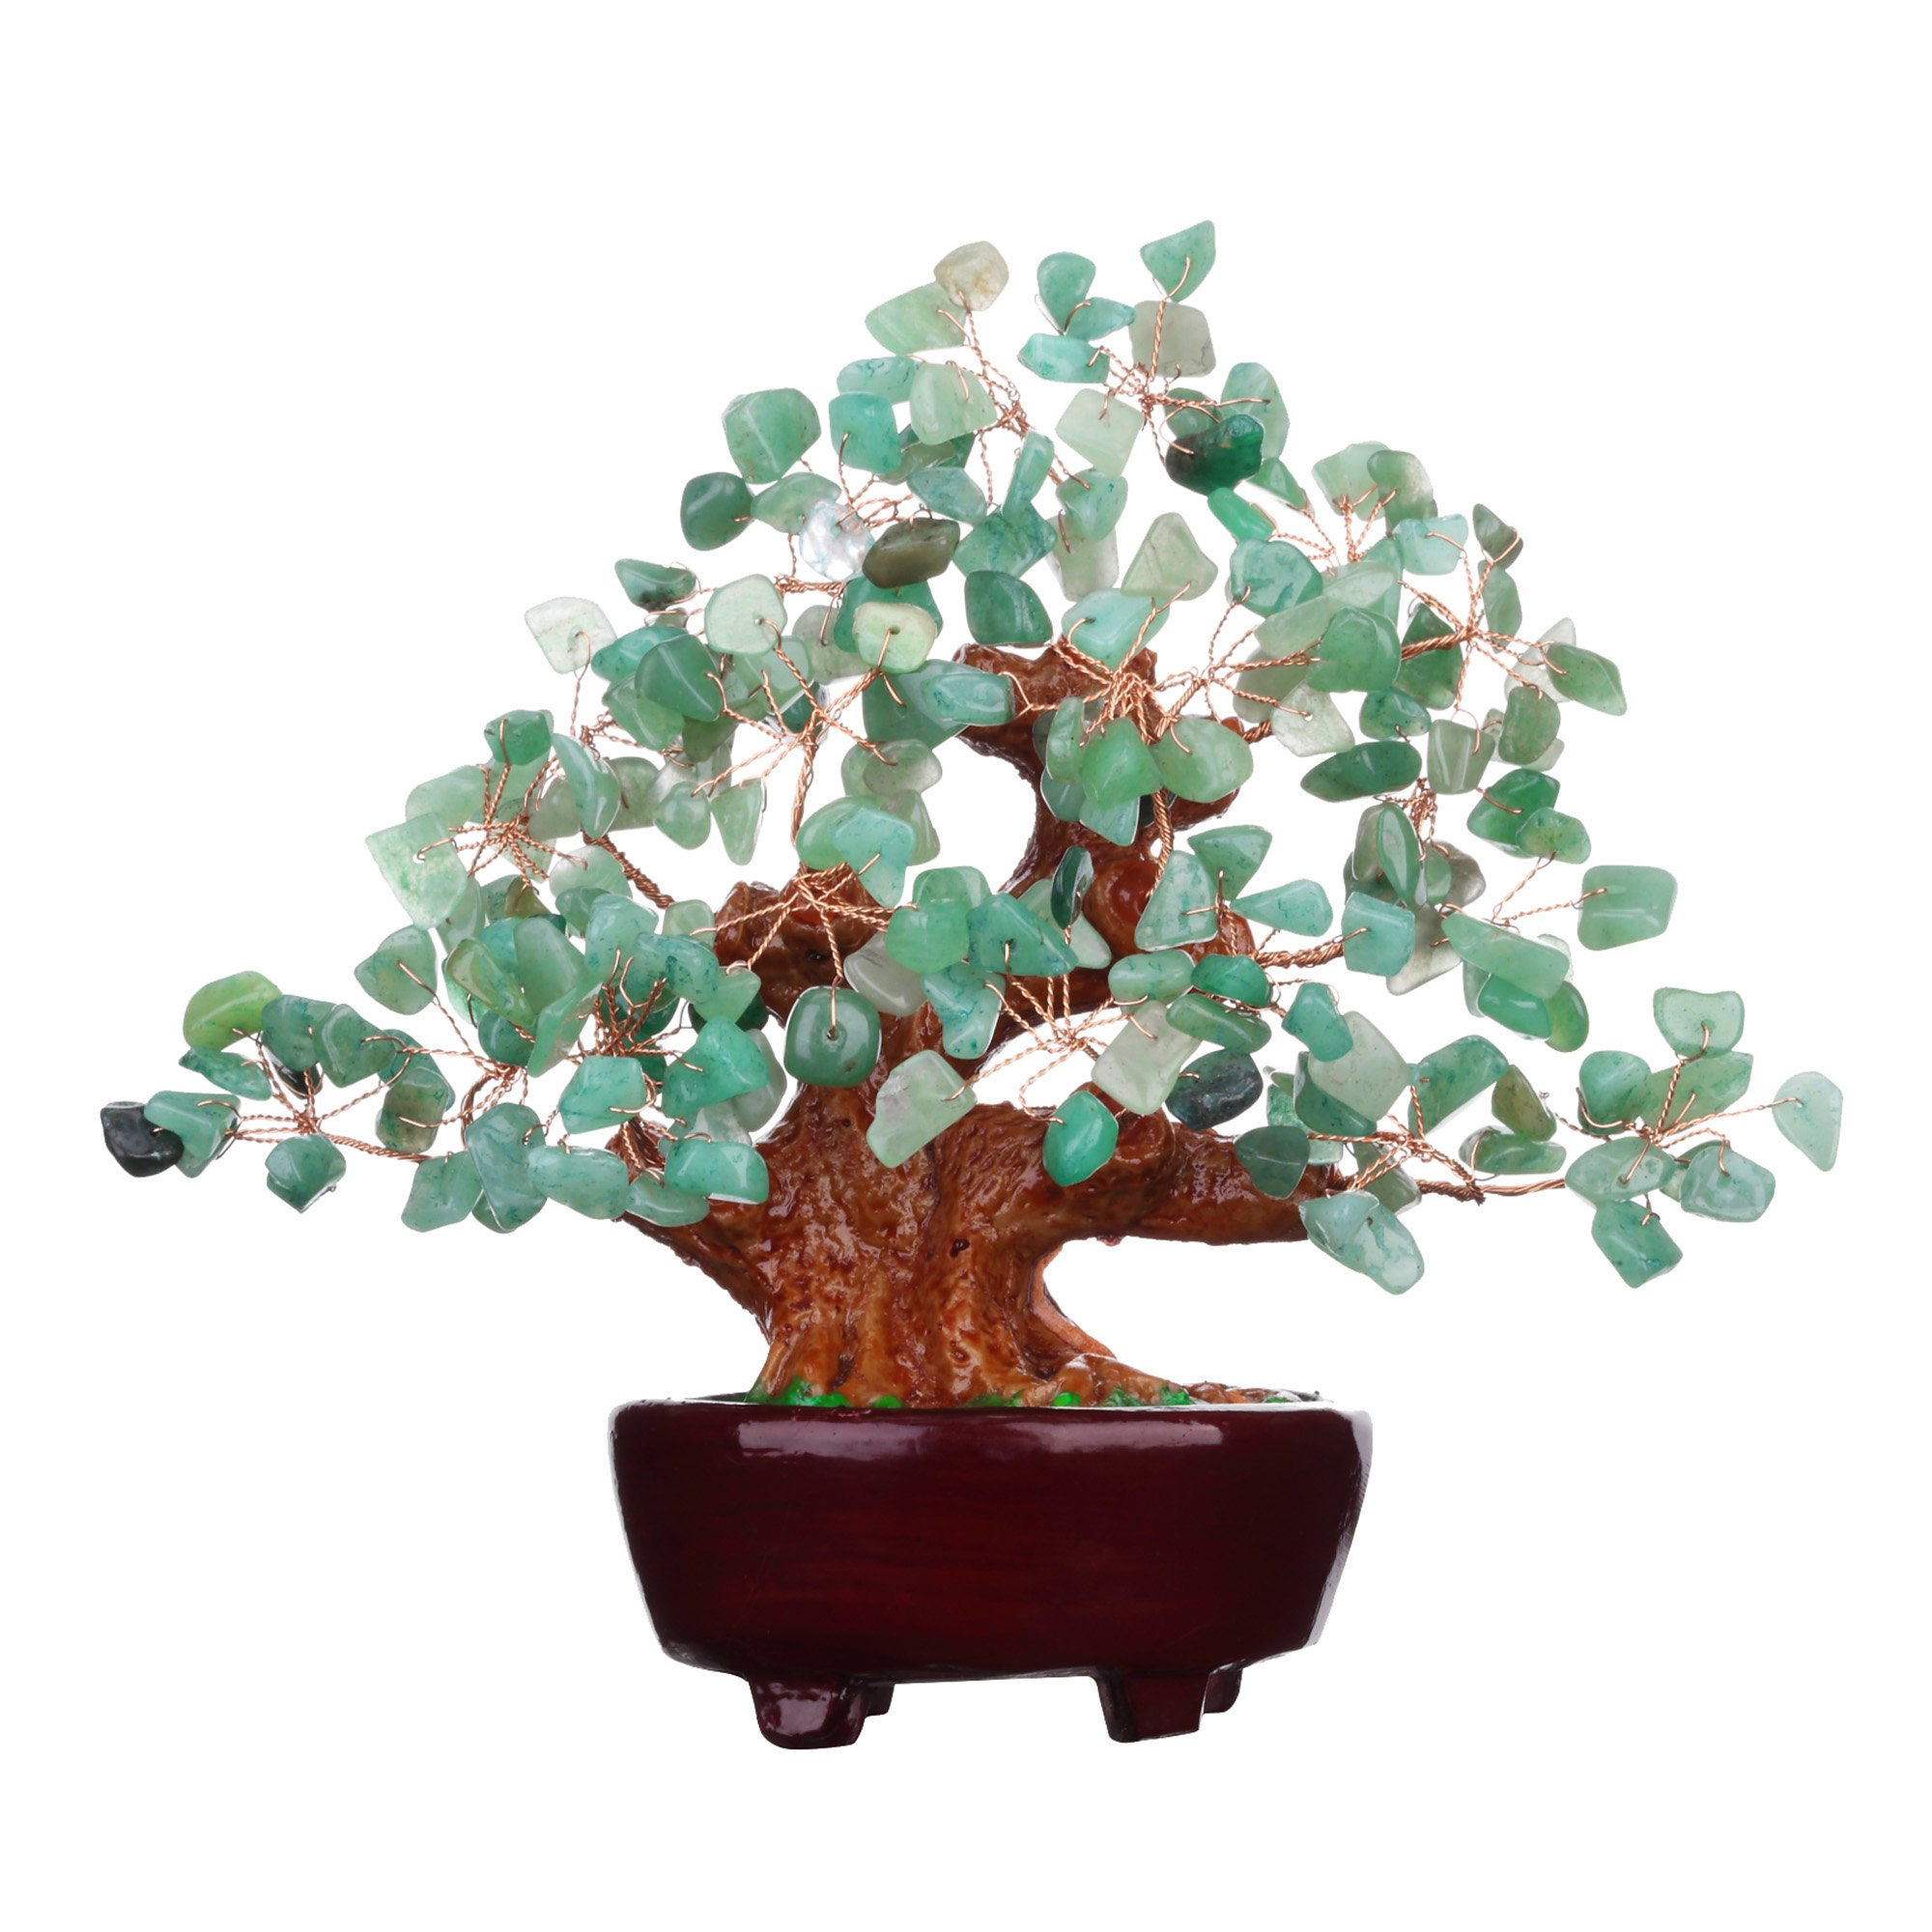 Parma77 Mart 7 Inch Feng Shui Aventurine Quartz Gem Stone Money Tree Natural Green Crystal Art Decoration Office Living Room Good Luck by Parma77